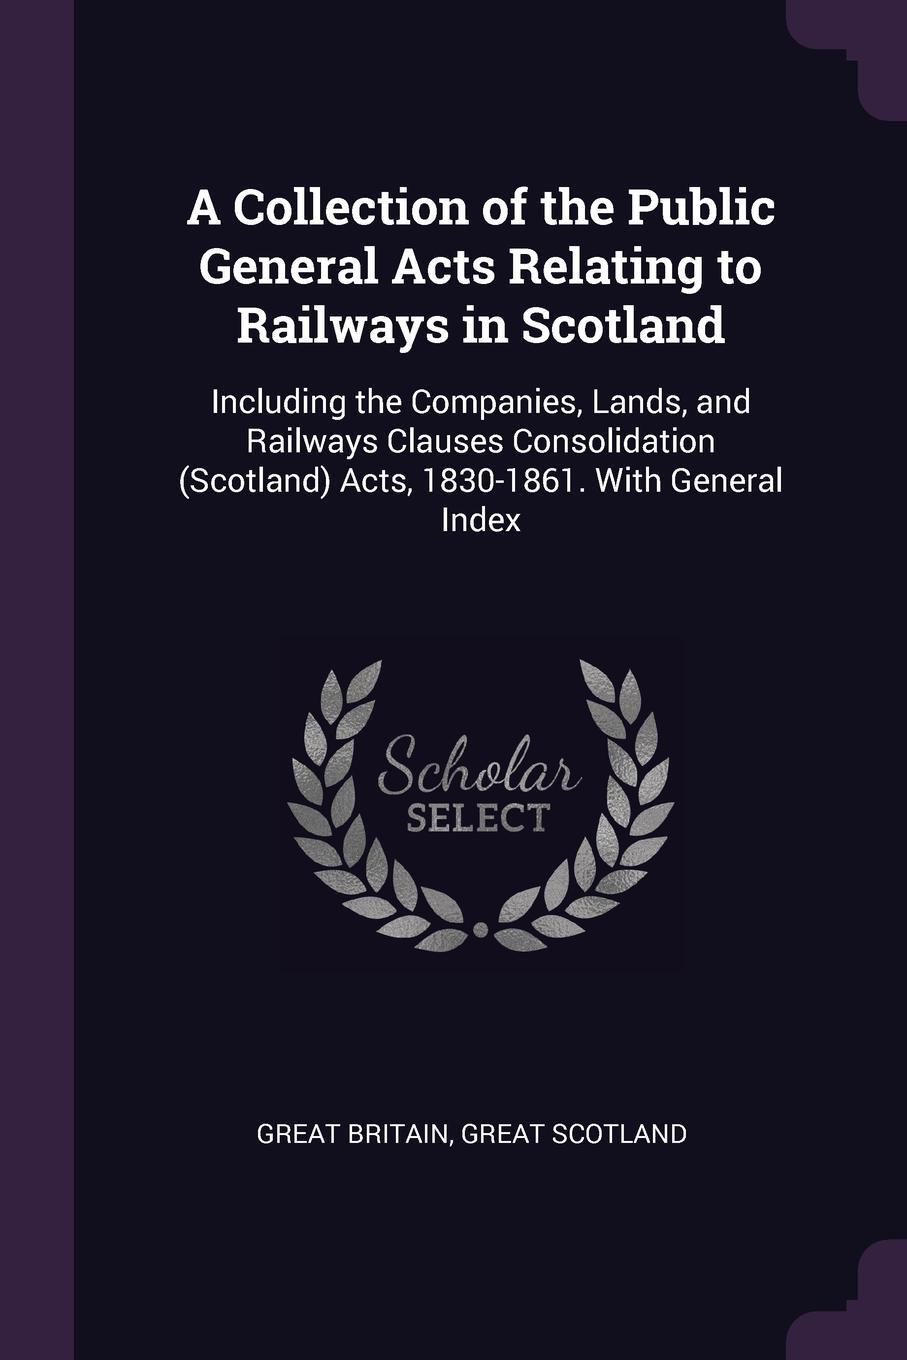 Great Britain, Great Scotland. A Collection of the Public General Acts Relating to Railways in Scotland. Including the Companies, Lands, and Railways Clauses Consolidation (Scotland) Acts, 1830-1861. With General Index